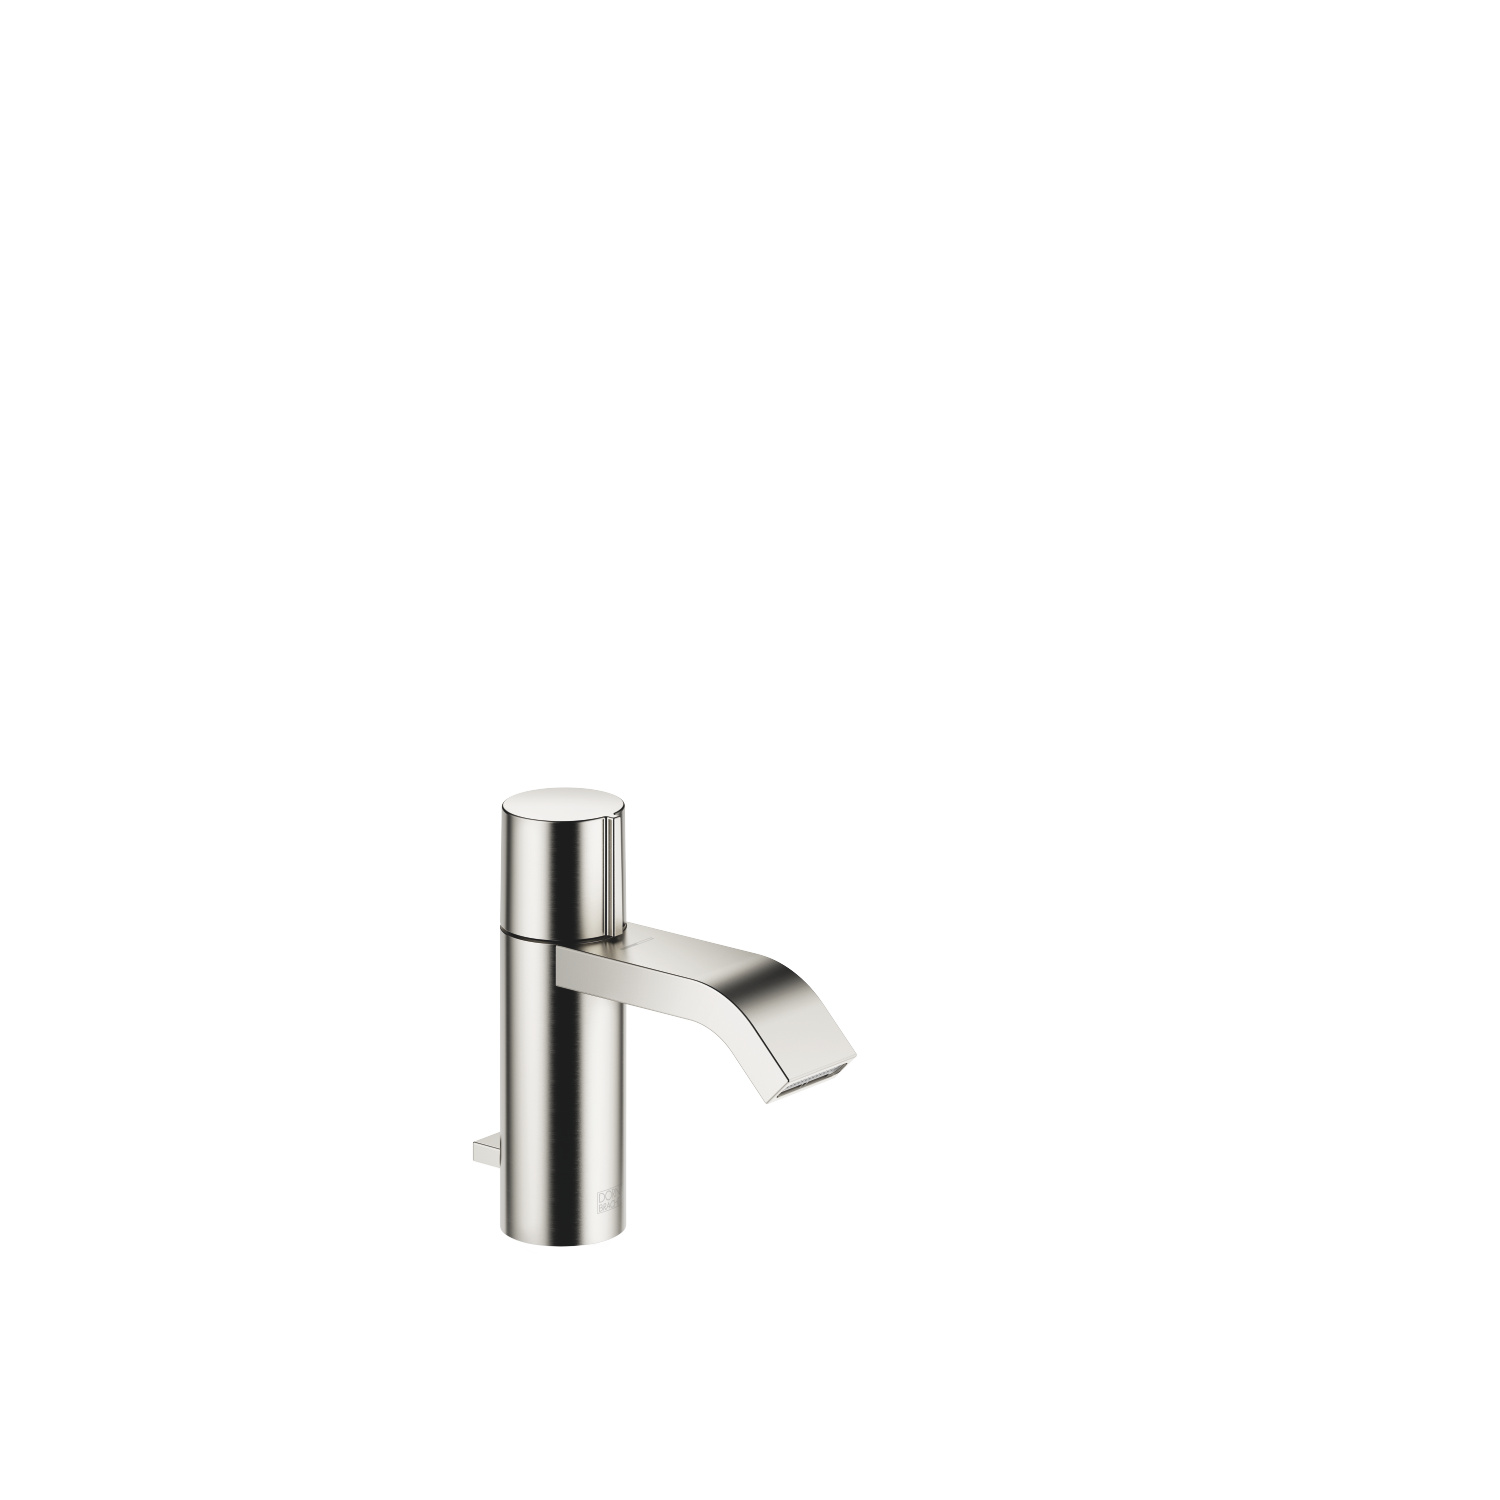 Single-lever basin mixer with pop-up waste - platinum matt - 33 507 670-06